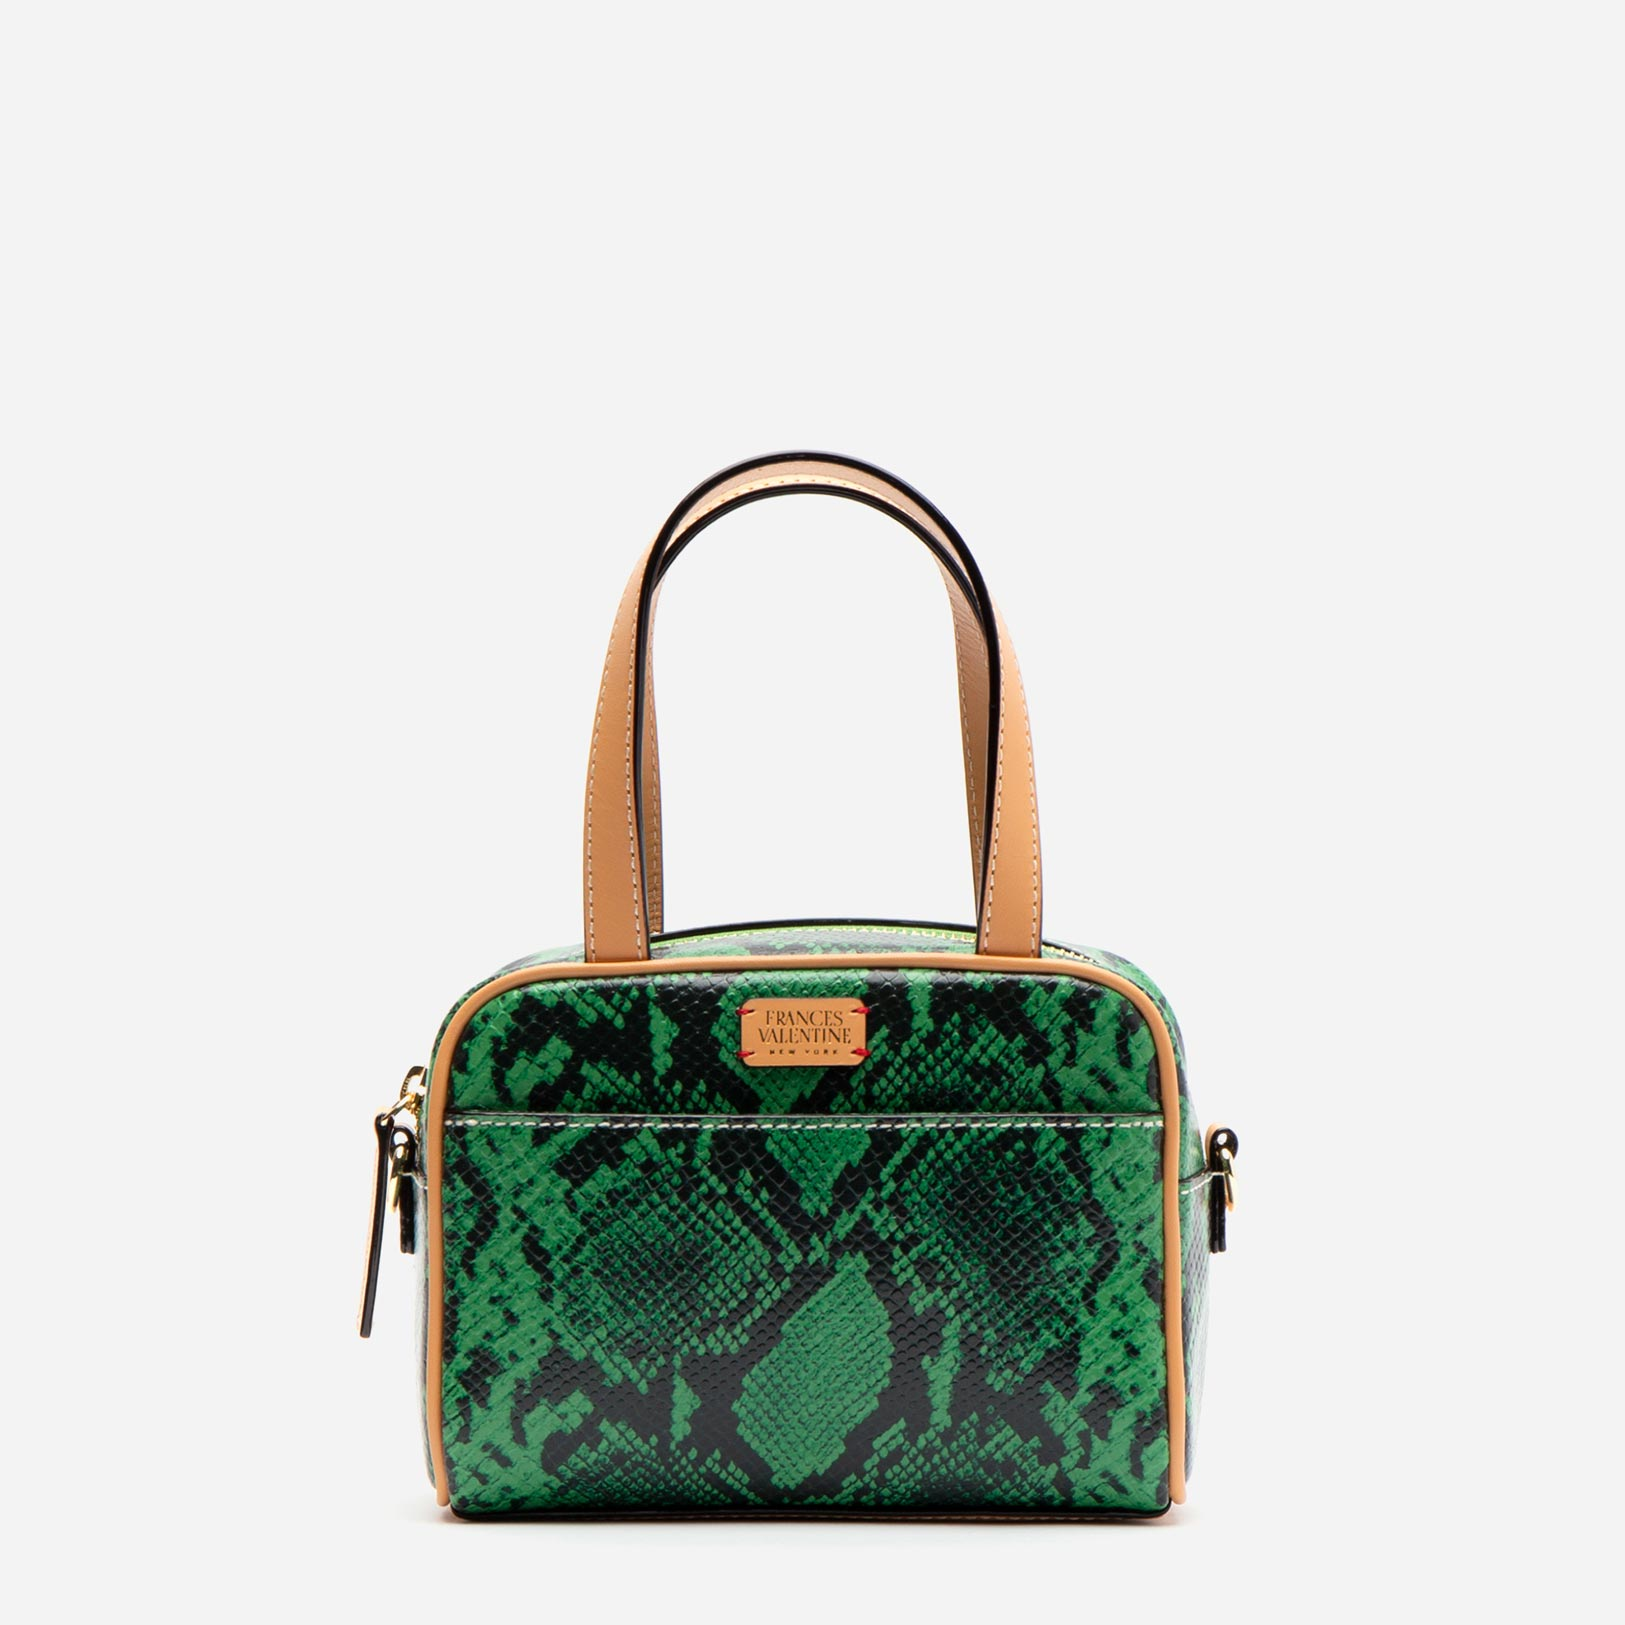 Baby Tote Snake Embossed Leather Green - Frances Valentine